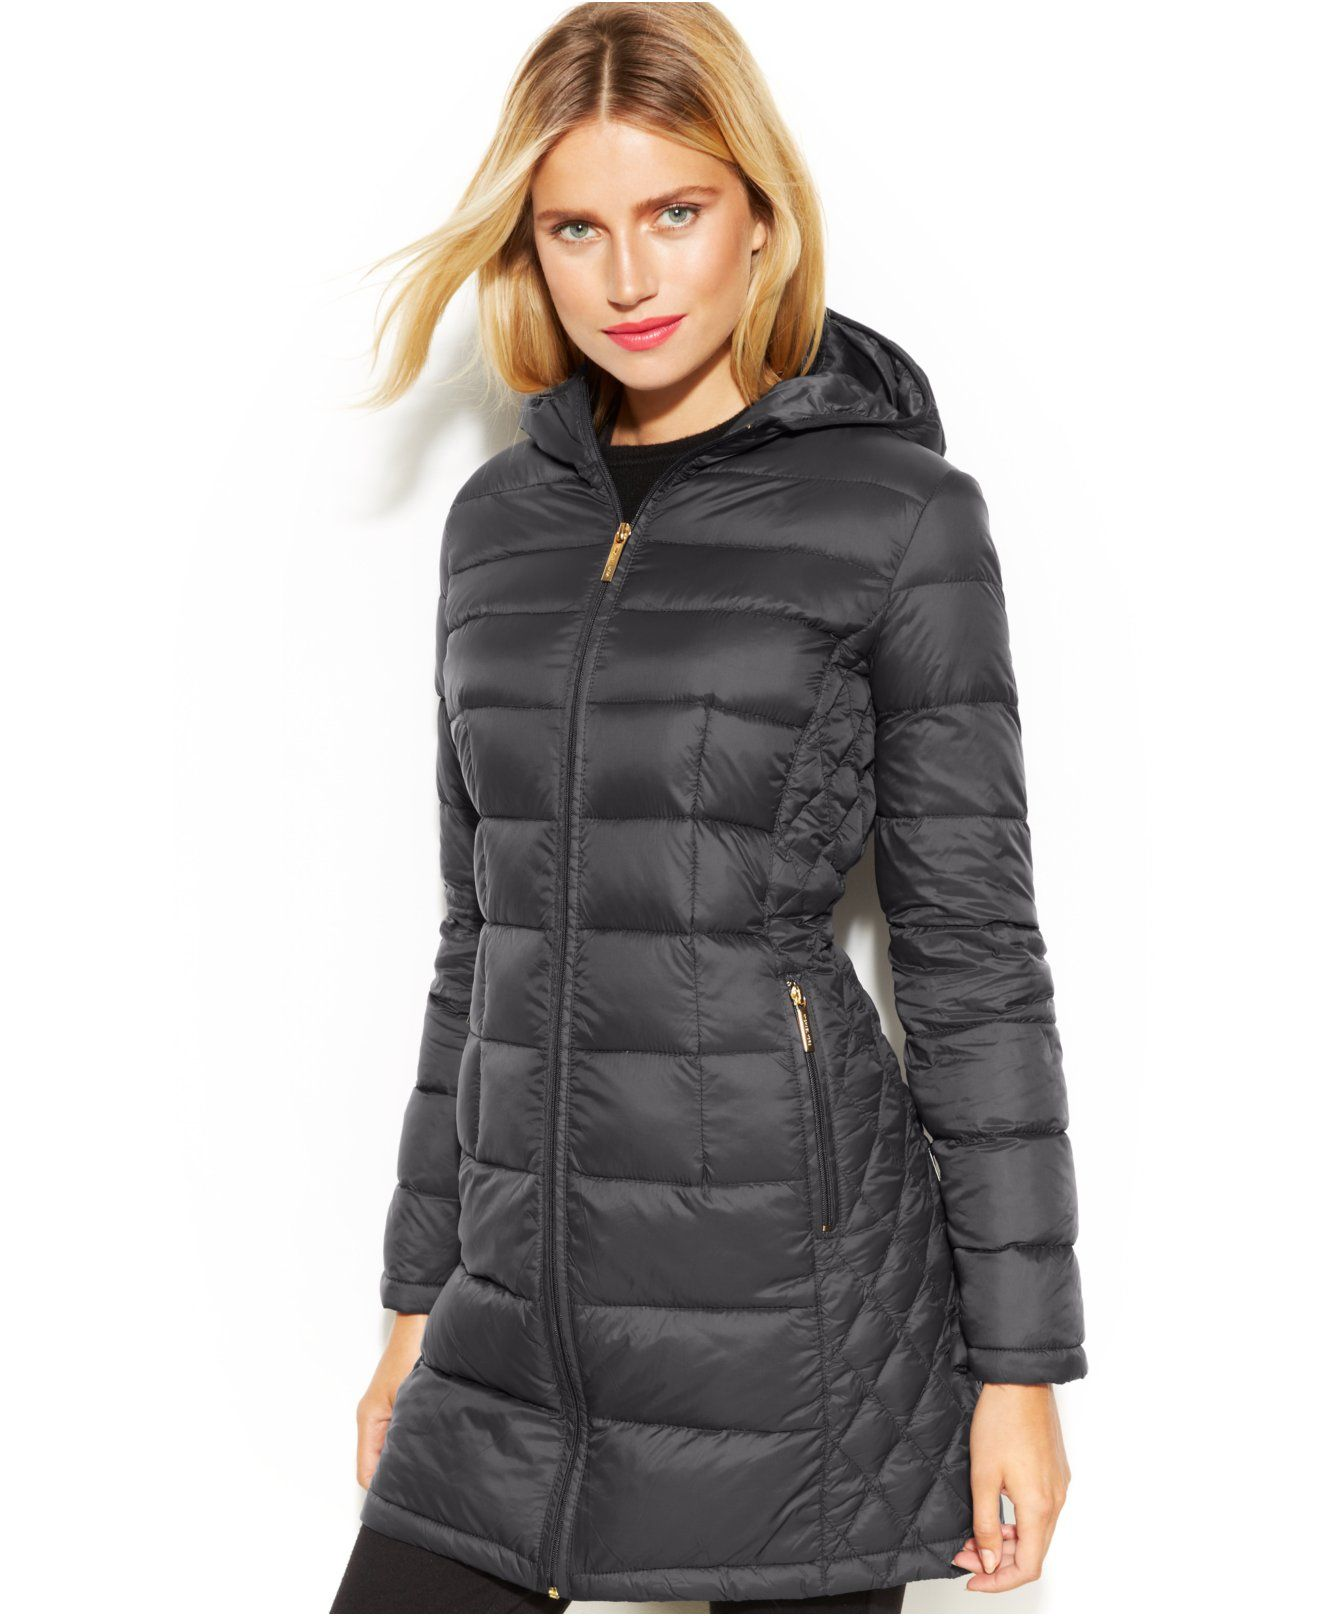 7cf333a3f27 MICHAEL Michael Kors Petite Quilted Down Packable Puffer Coat - Coats -  Women - Macy s